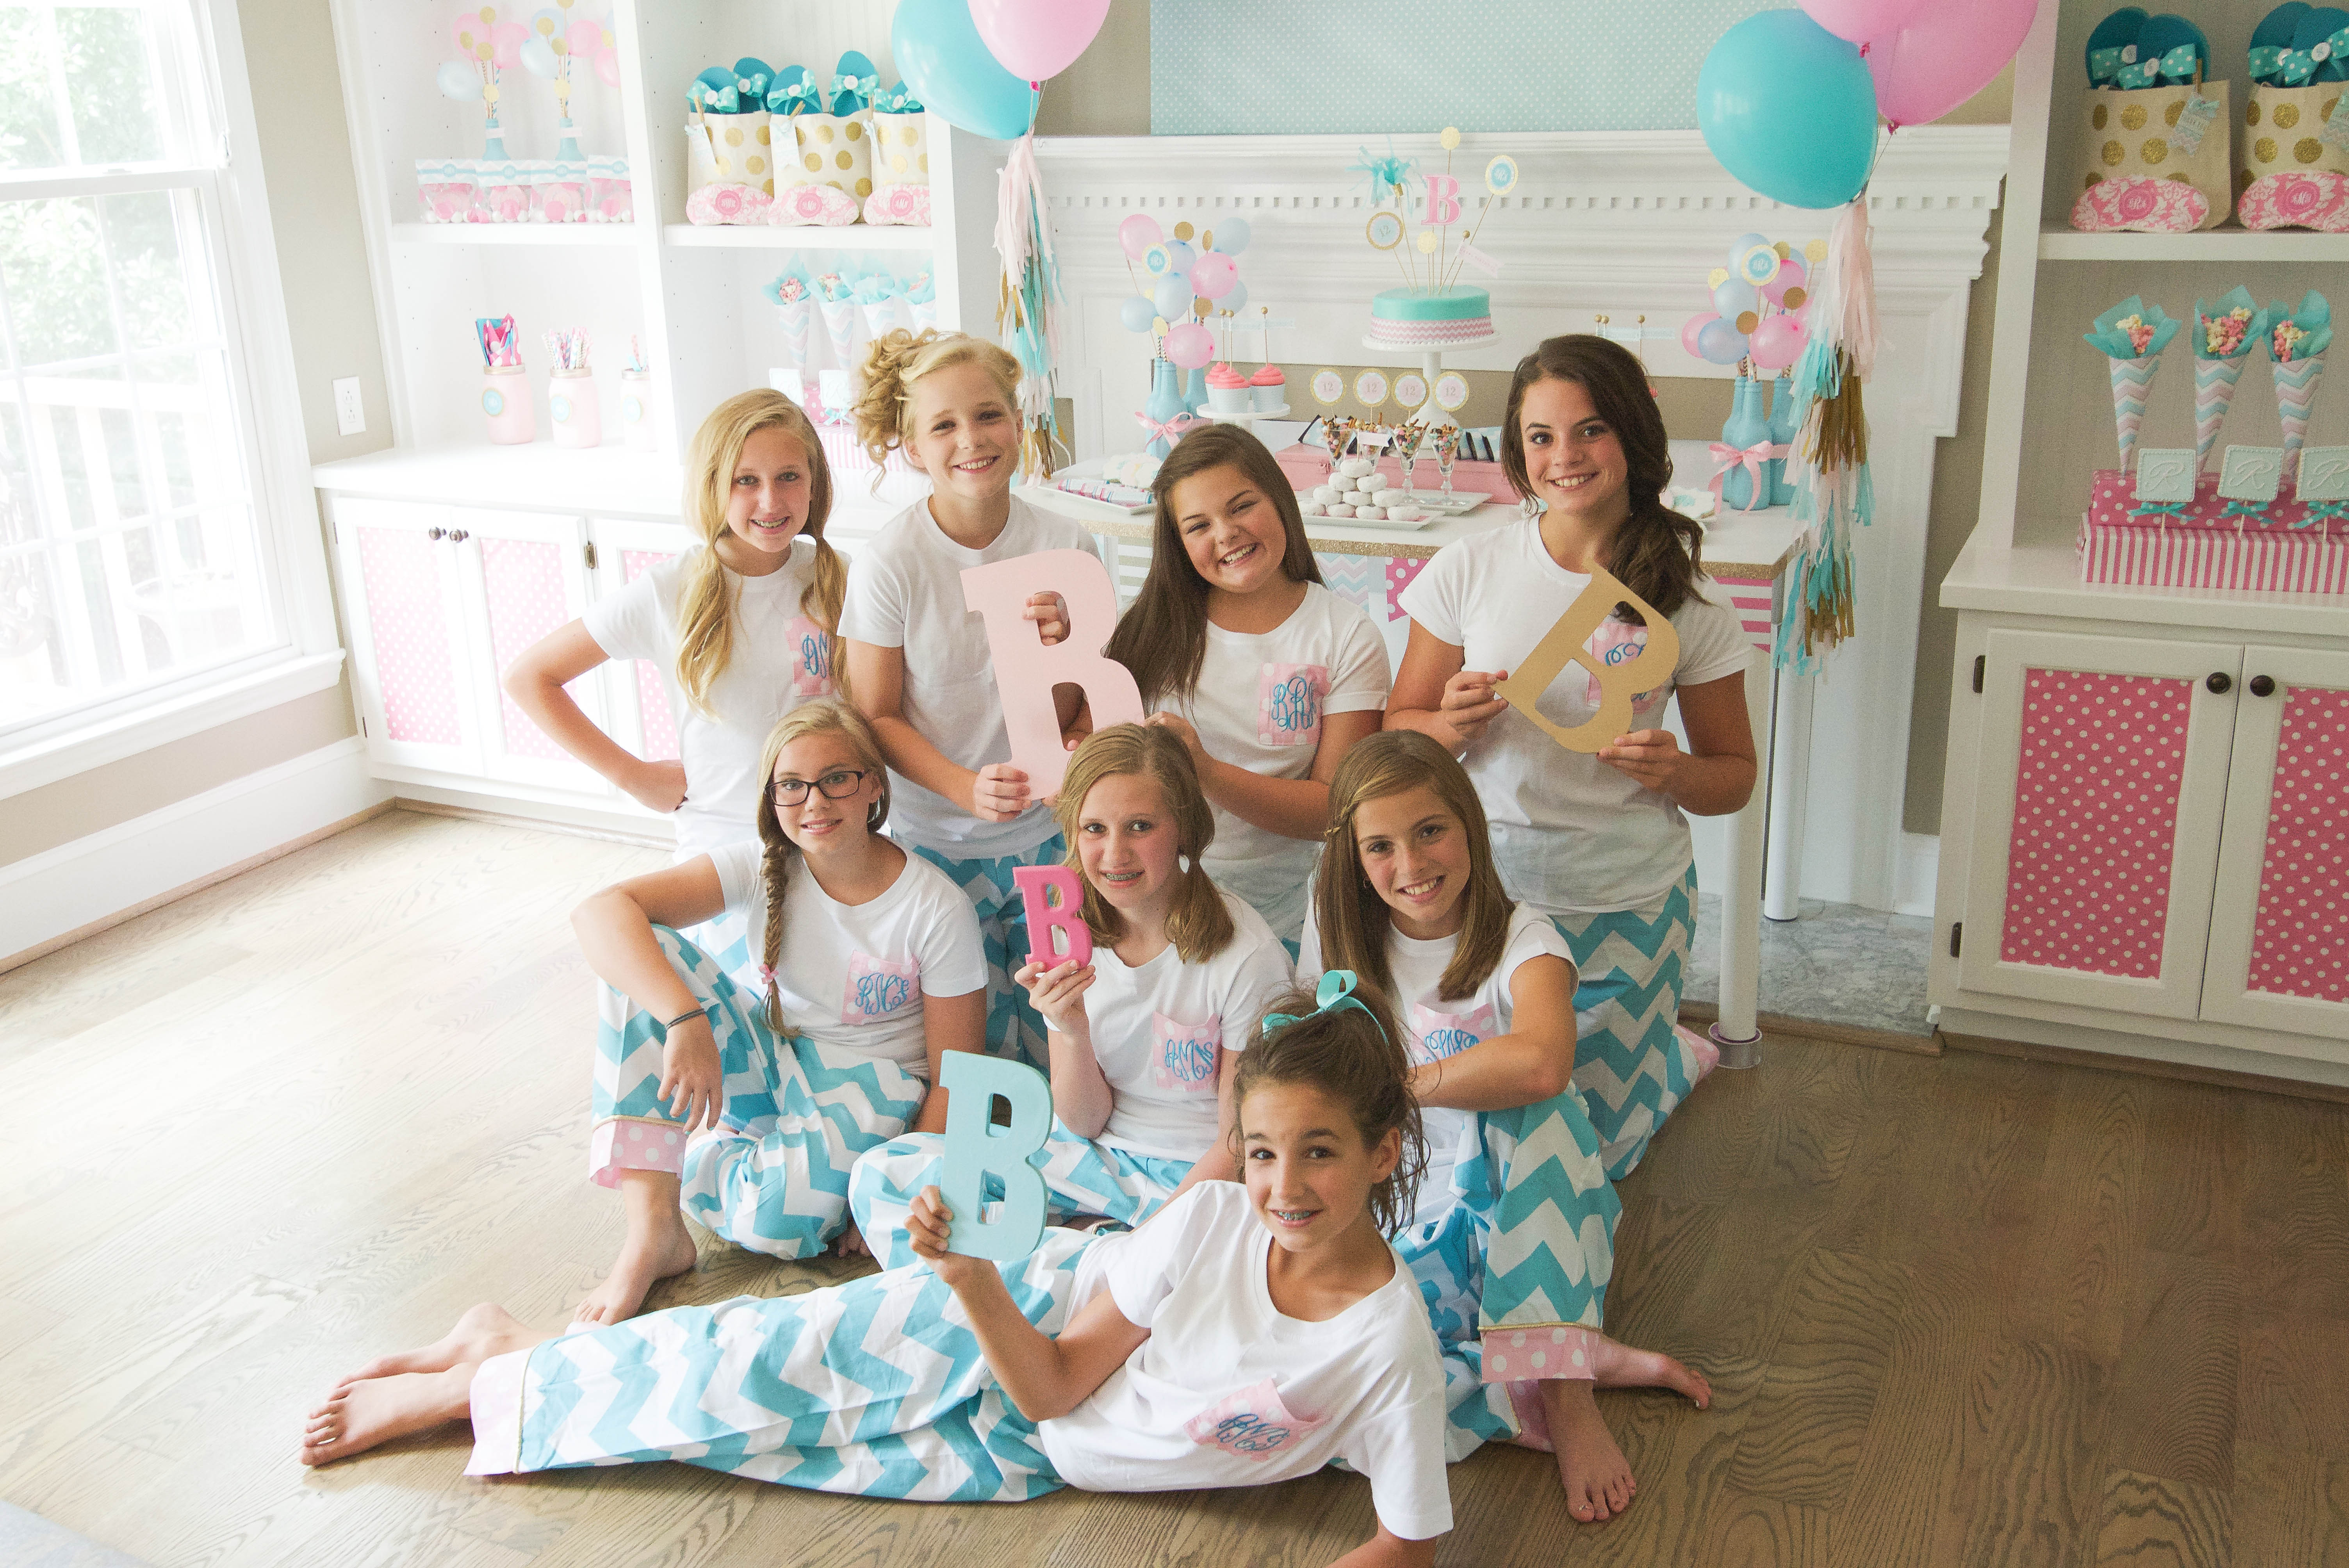 Best ideas about Sleepover Birthday Party . Save or Pin Brynne s Monogram Slumber Birthday Party for Balloon Time Now.